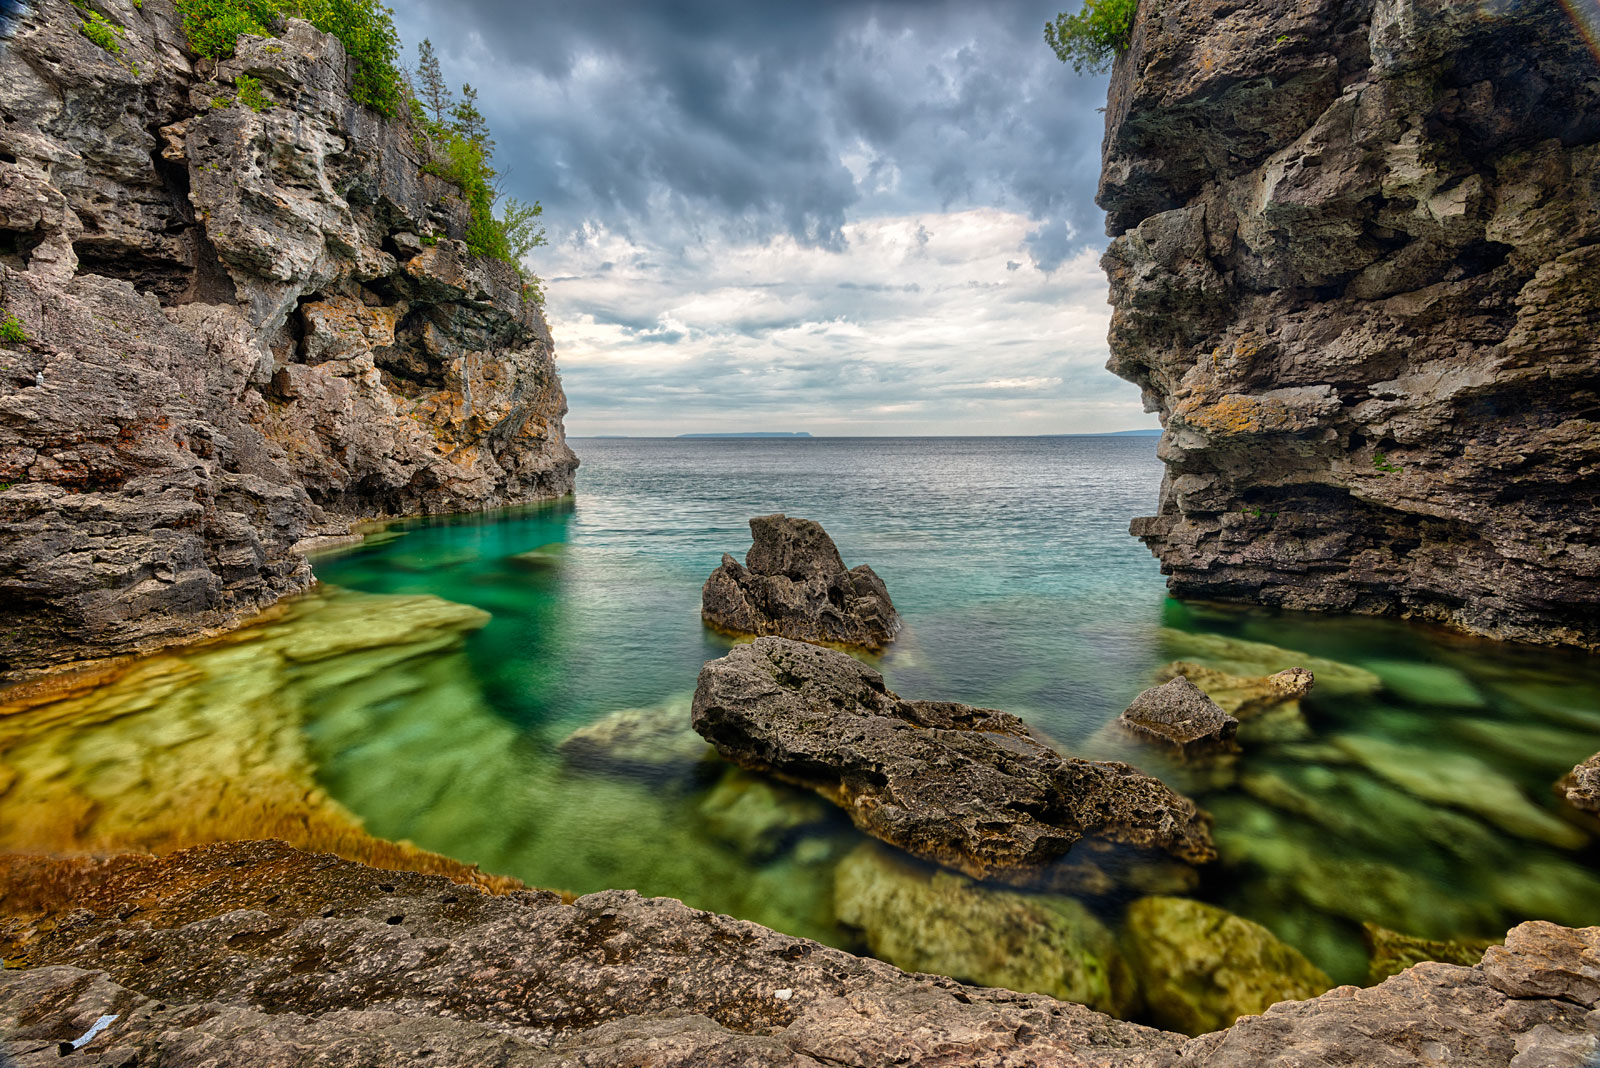 Rocks and turquoise waters at the grotto bruce peninsula national park